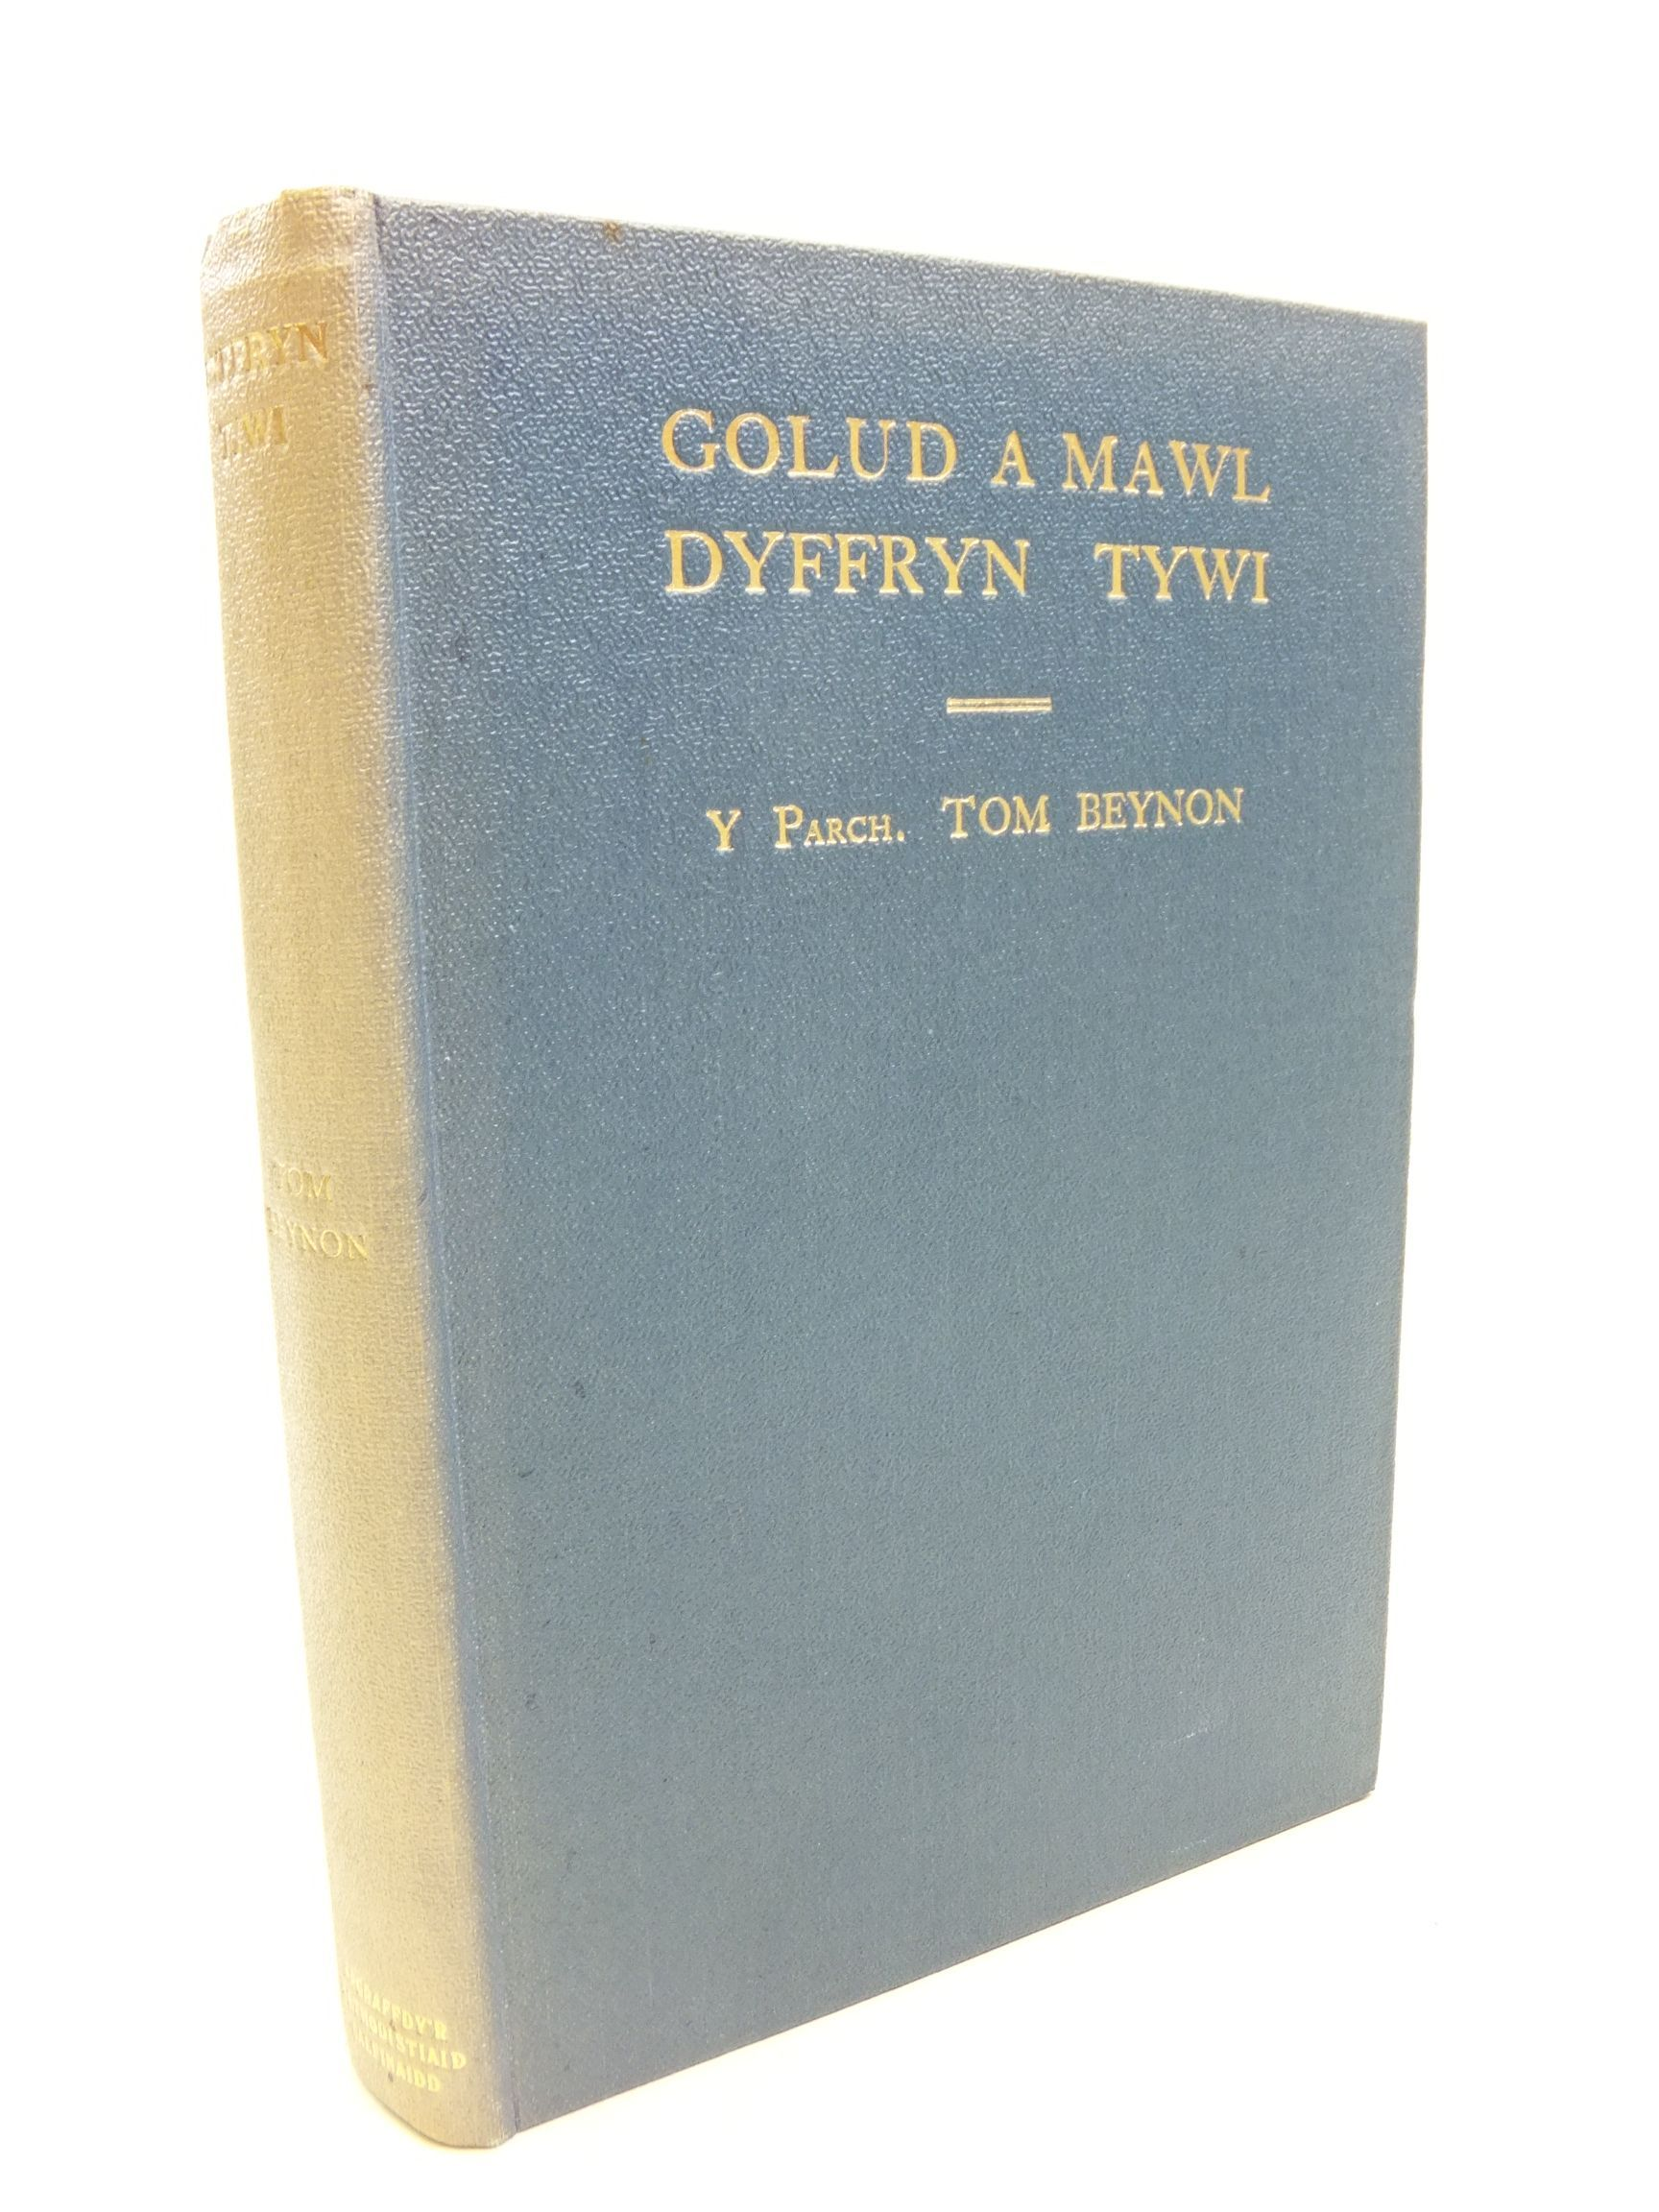 Photo of GOLUD A MAWL DYFFRYN TYWI written by Beynon, Tom Griffiths, Peter Hughes published by Argraffdy'R Methodistiaid Calfinaidd (STOCK CODE: 1807341)  for sale by Stella & Rose's Books